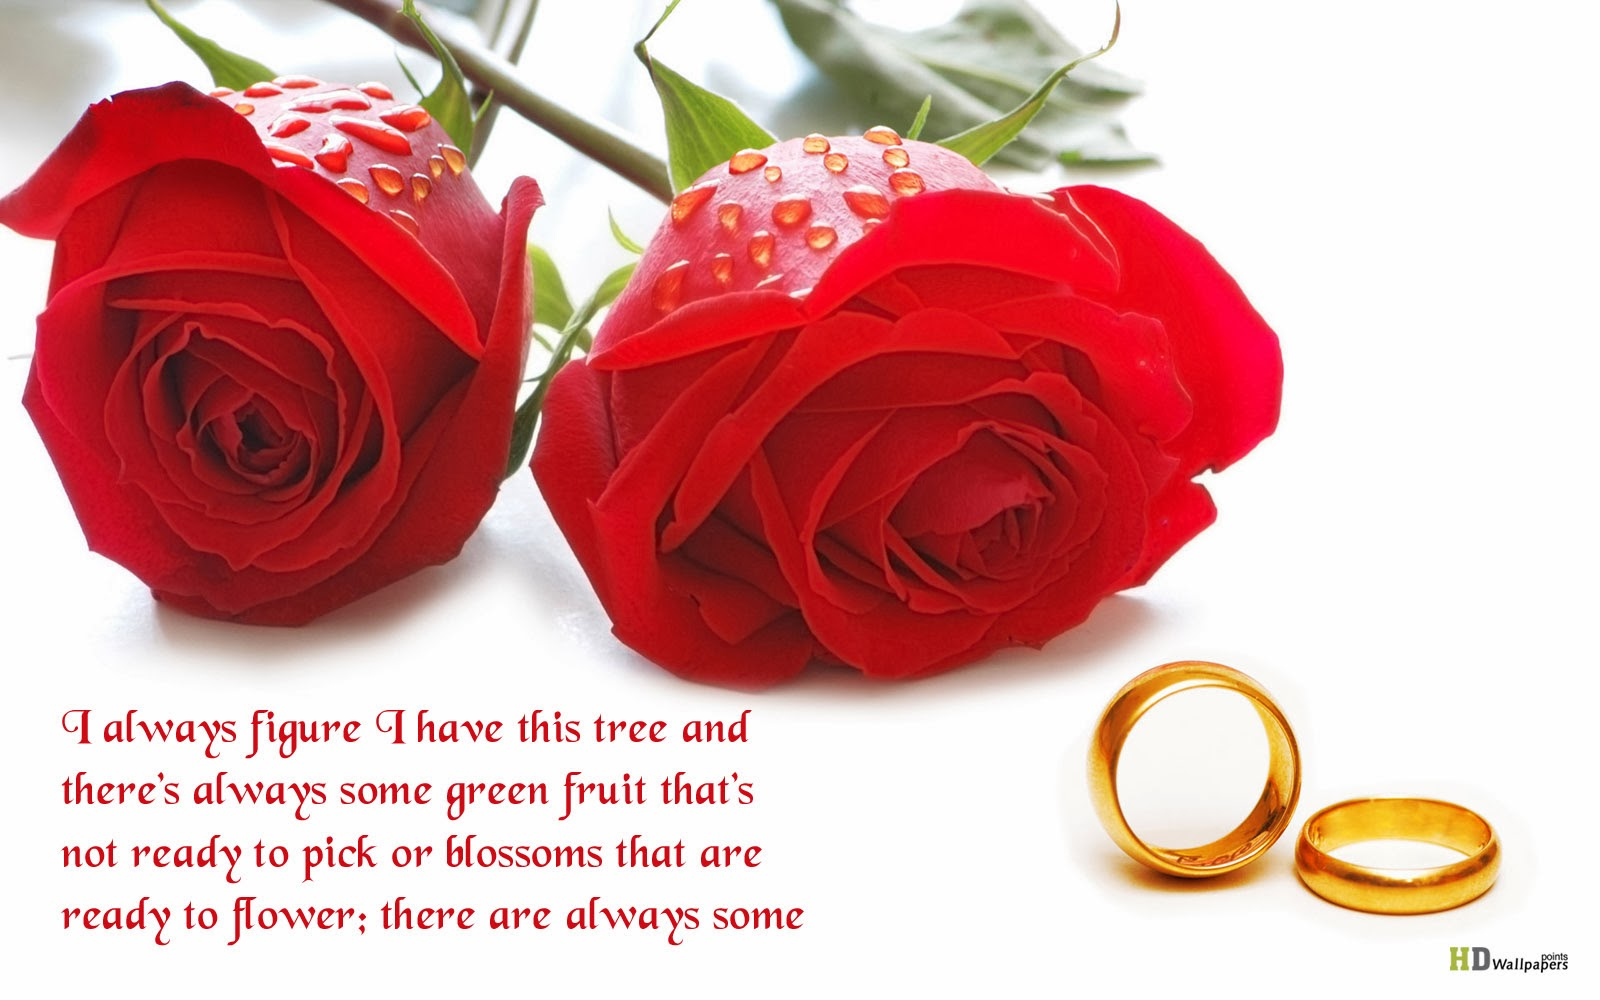 Husband Wife Islamic Quotes Wallpaper Flowers Quotes Wallpapers Beautiful Flowers Wallpapers